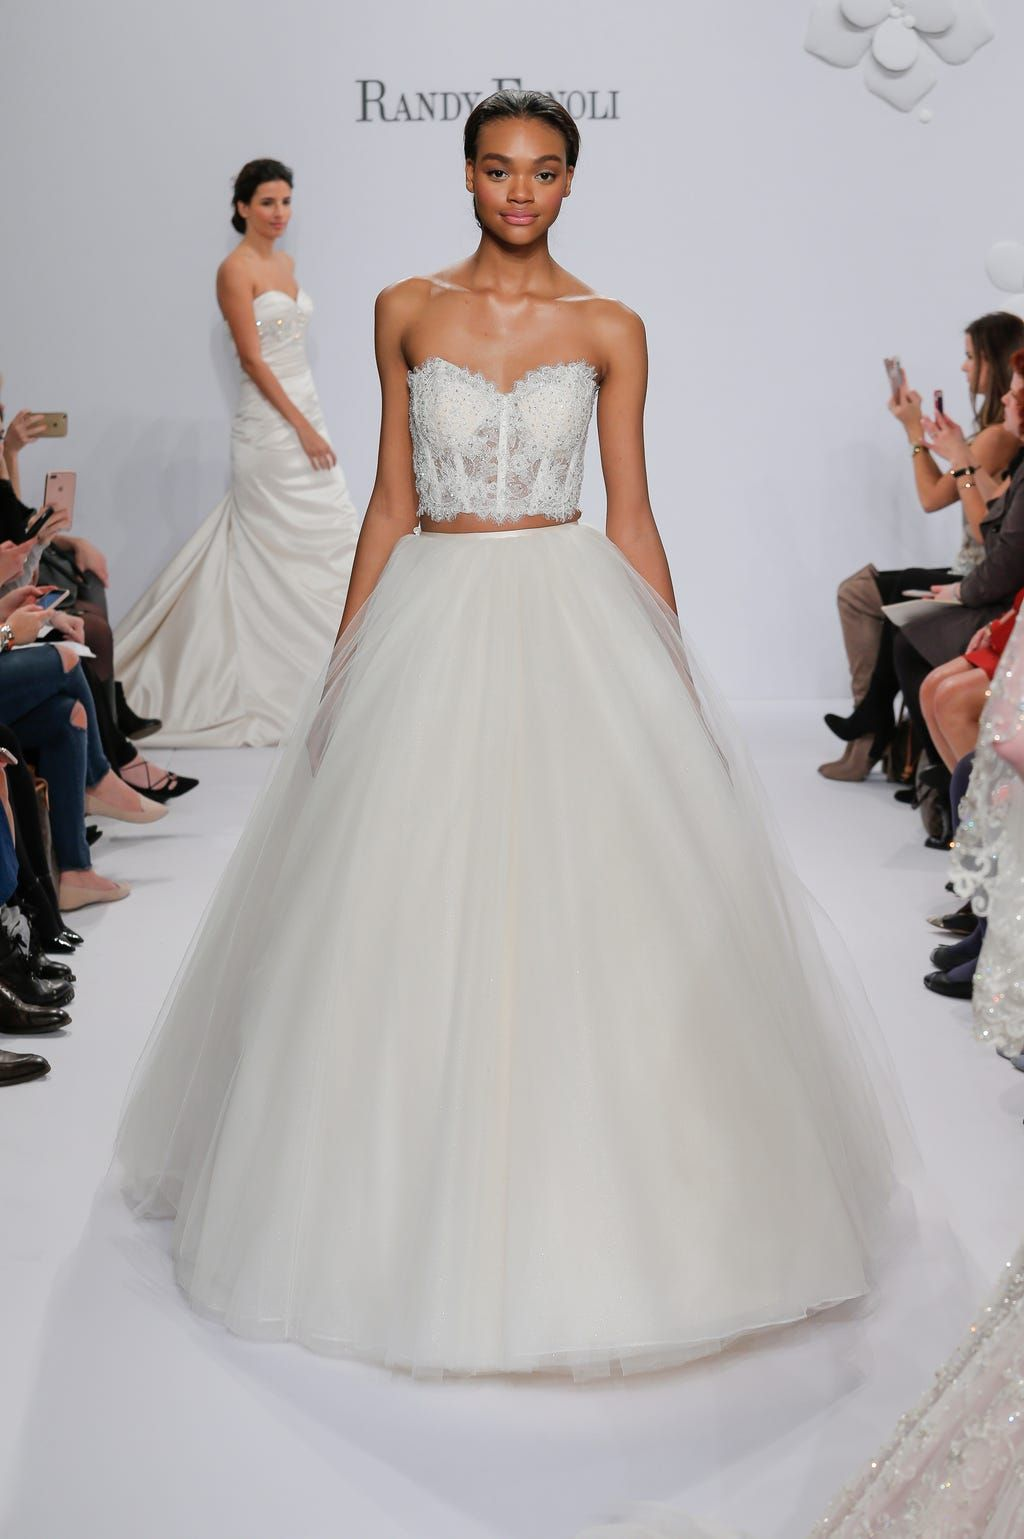 You Can Now Buy A Wedding Gown Designed By This Say Yes To The Dress Star In 2020 Plus Size Bridal Dresses Dream Wedding Dresses Wedding Dress Styles